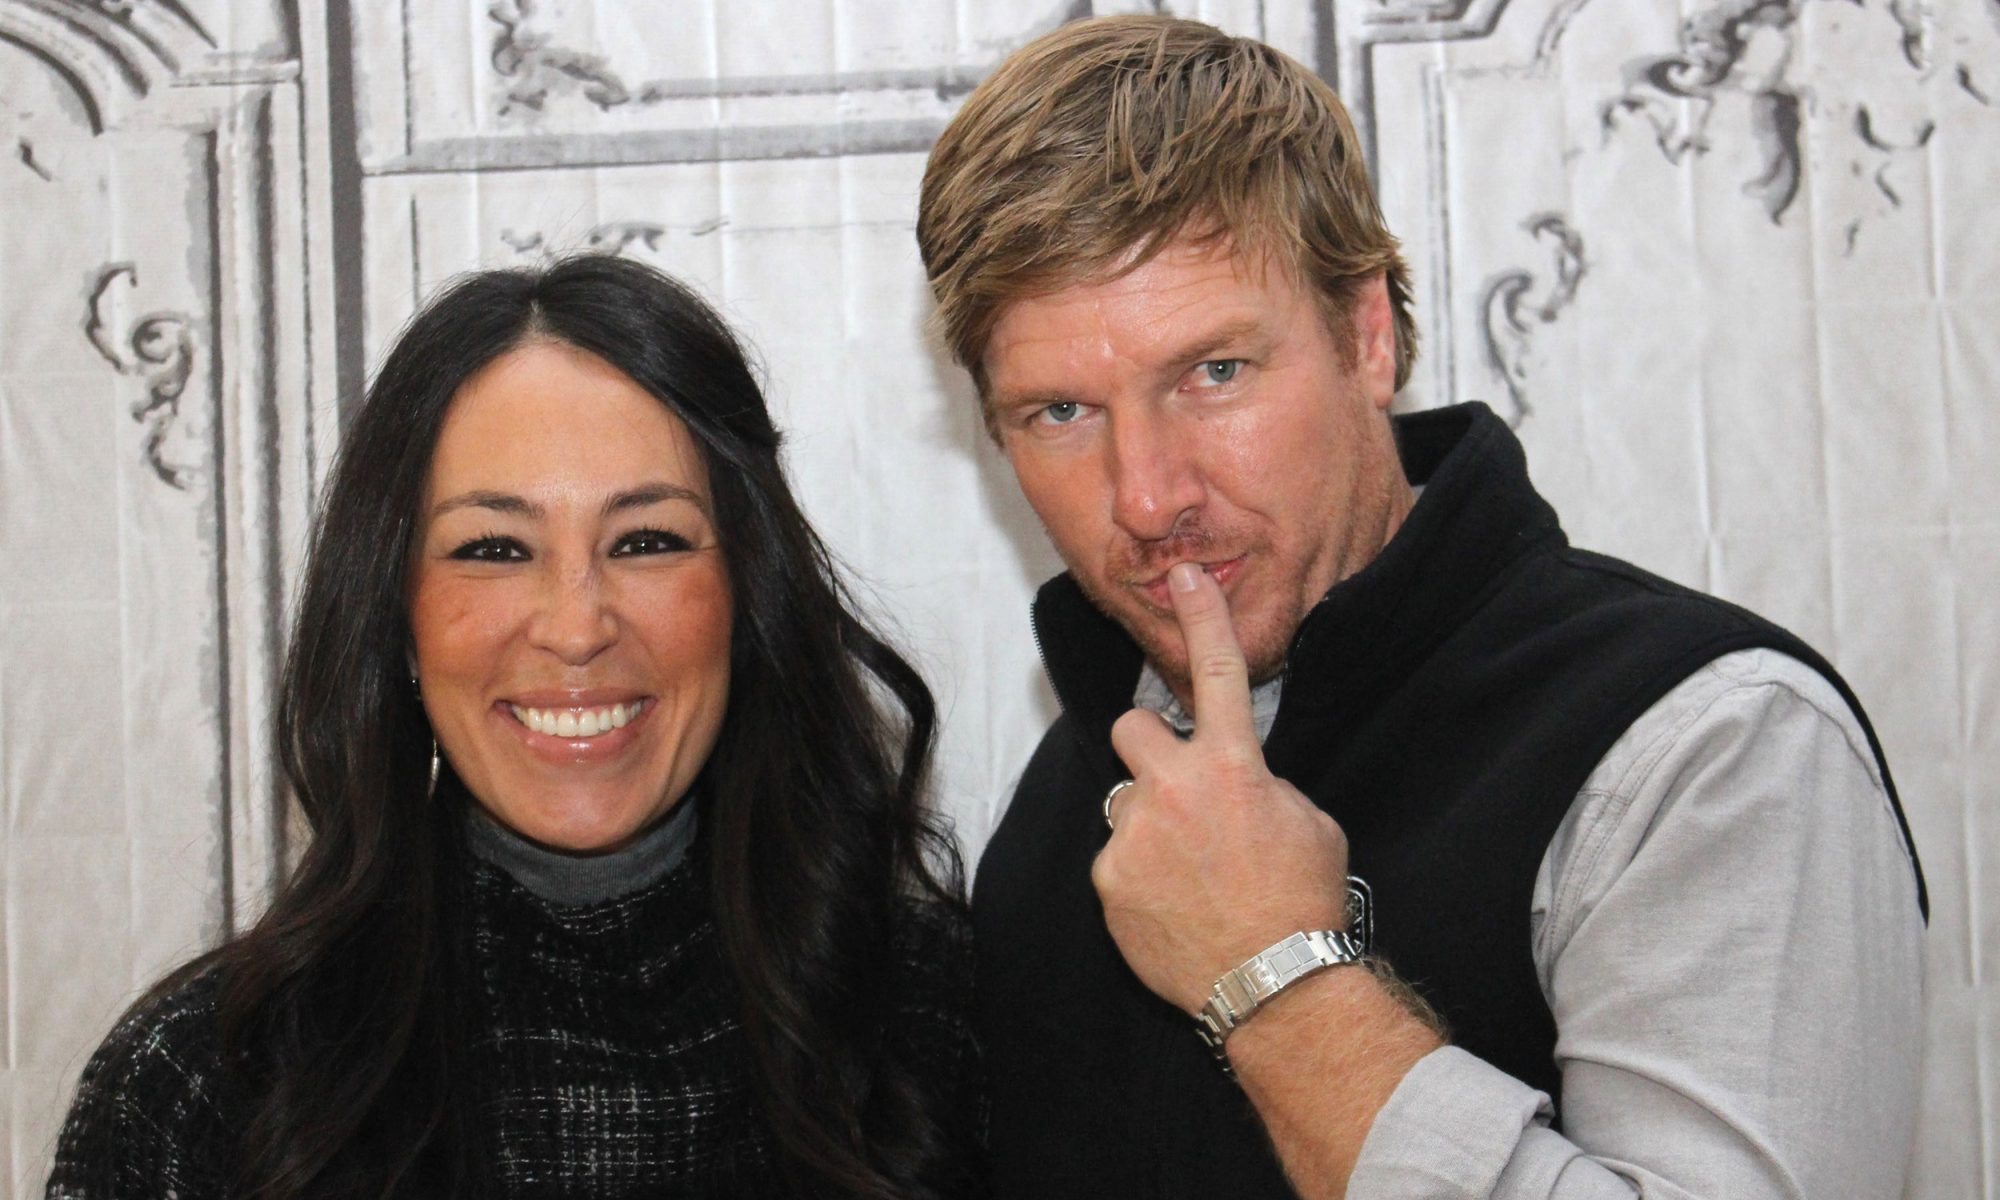 EC: 'Fixer Upper' Couple Chip and Joanna Gaines Are Opening a Breakfast Restaurant